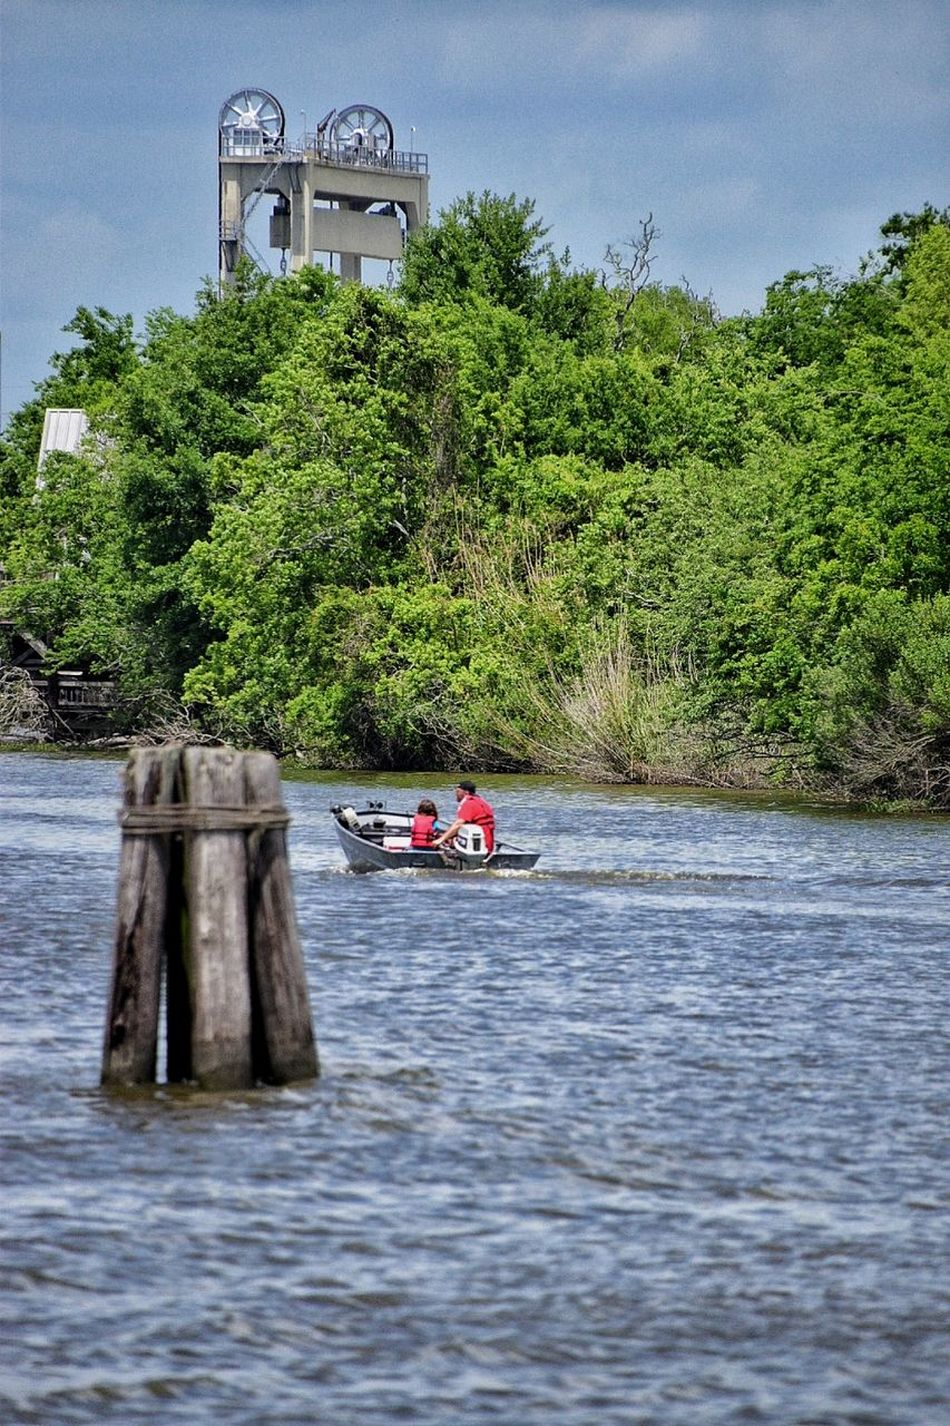 daytrippin Water River Tree Outdoors Real People Day Nautical Vessel Nature Men Adult Adults Only People Oar Only Men Sky South Louisiana Boats And Moorings Harbor Boatarde ✌ Drawbridge  Trees Water